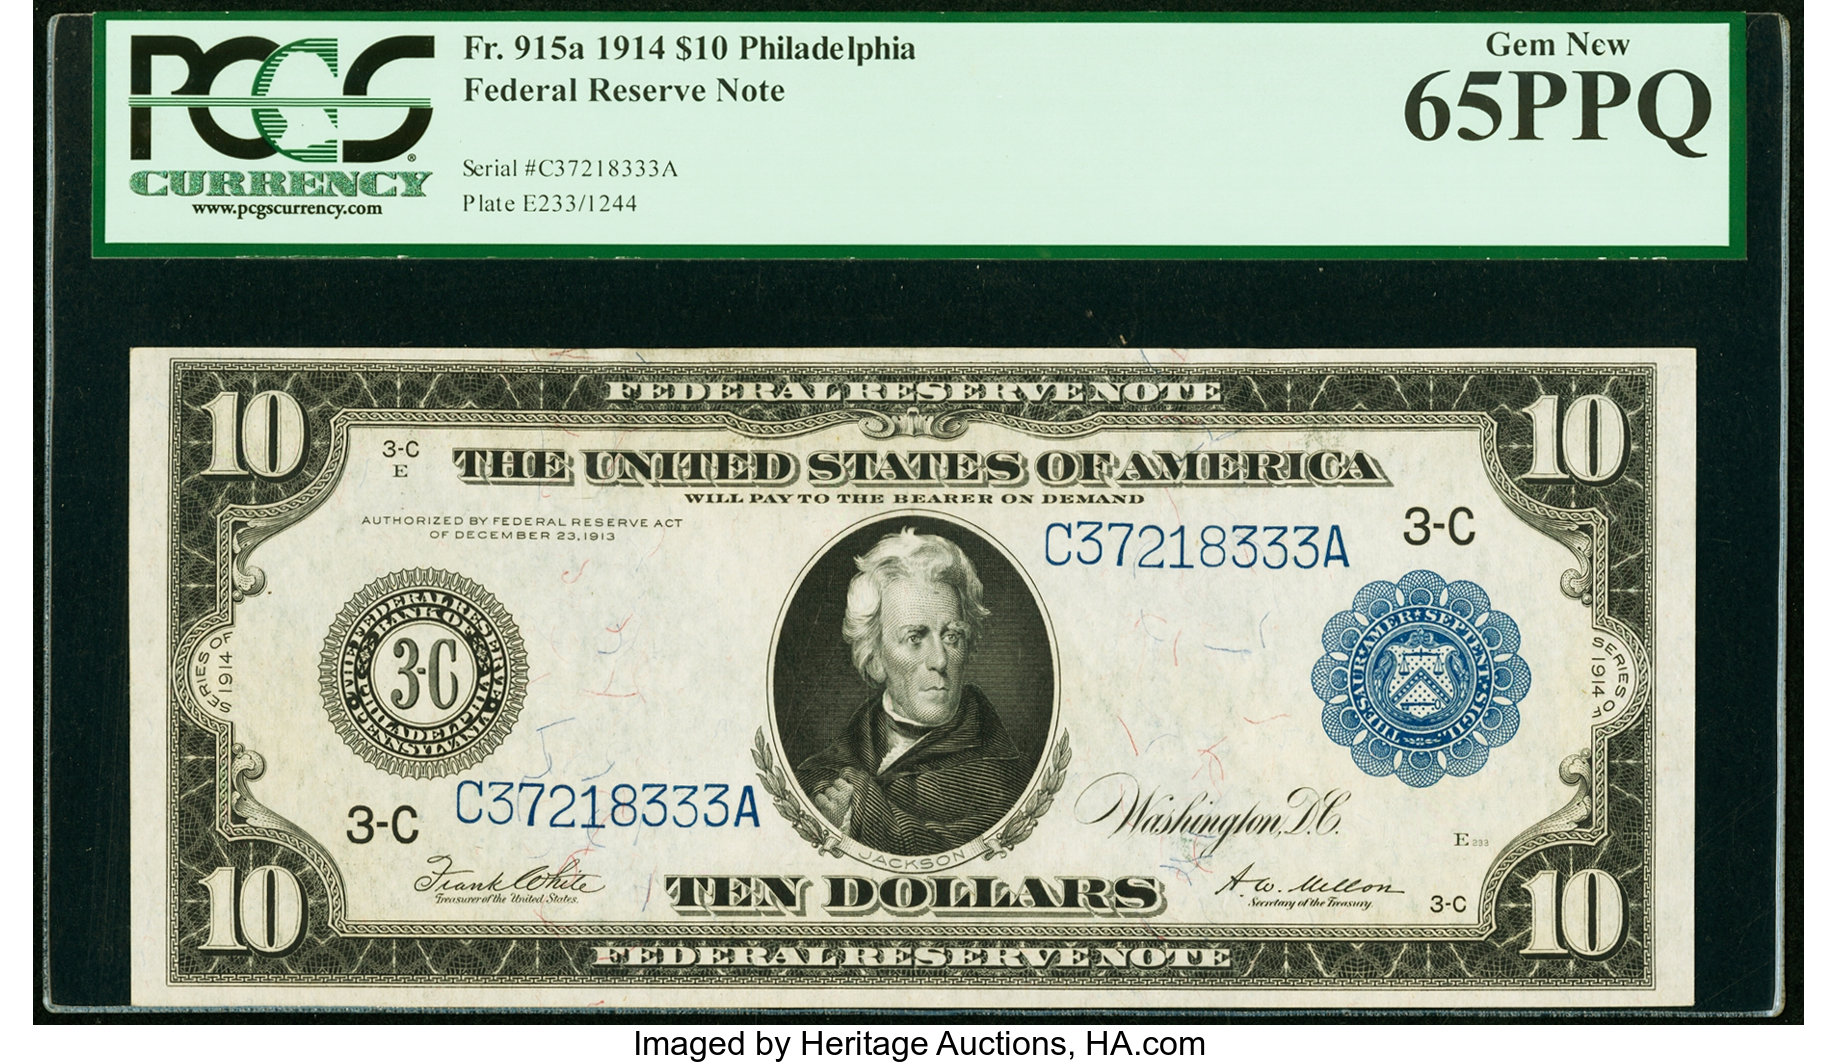 sample image for Fr.915A $10 Philly